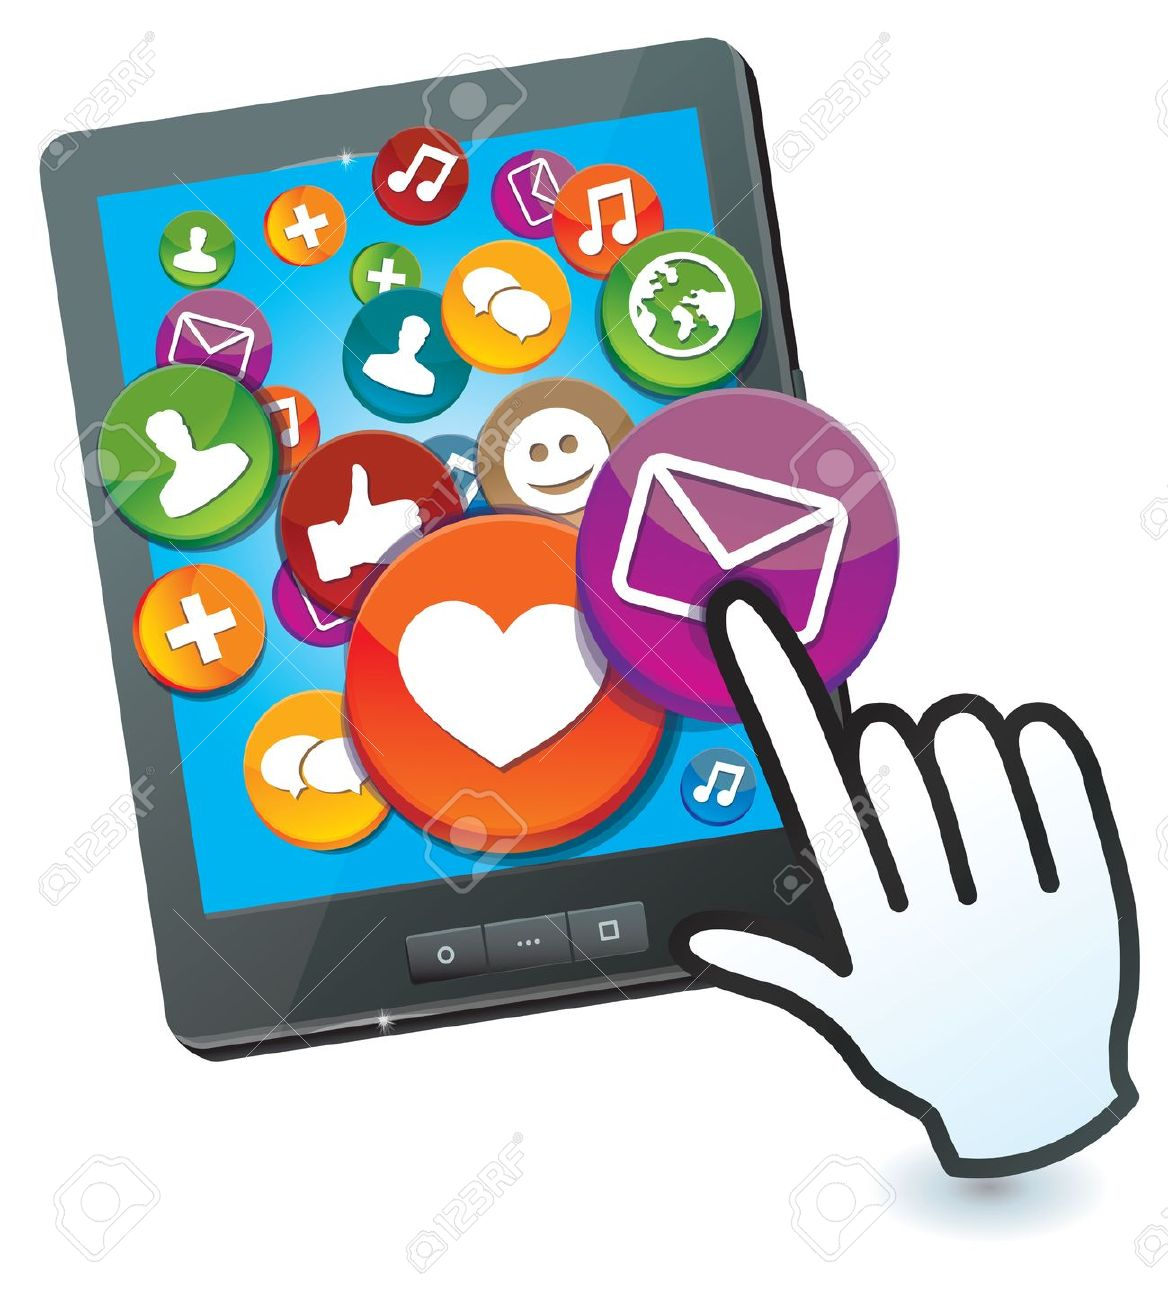 media-clipart-16595576-tablet-pc-with-social-media-icons-and-hand-cursor-Stock-Vector-internet